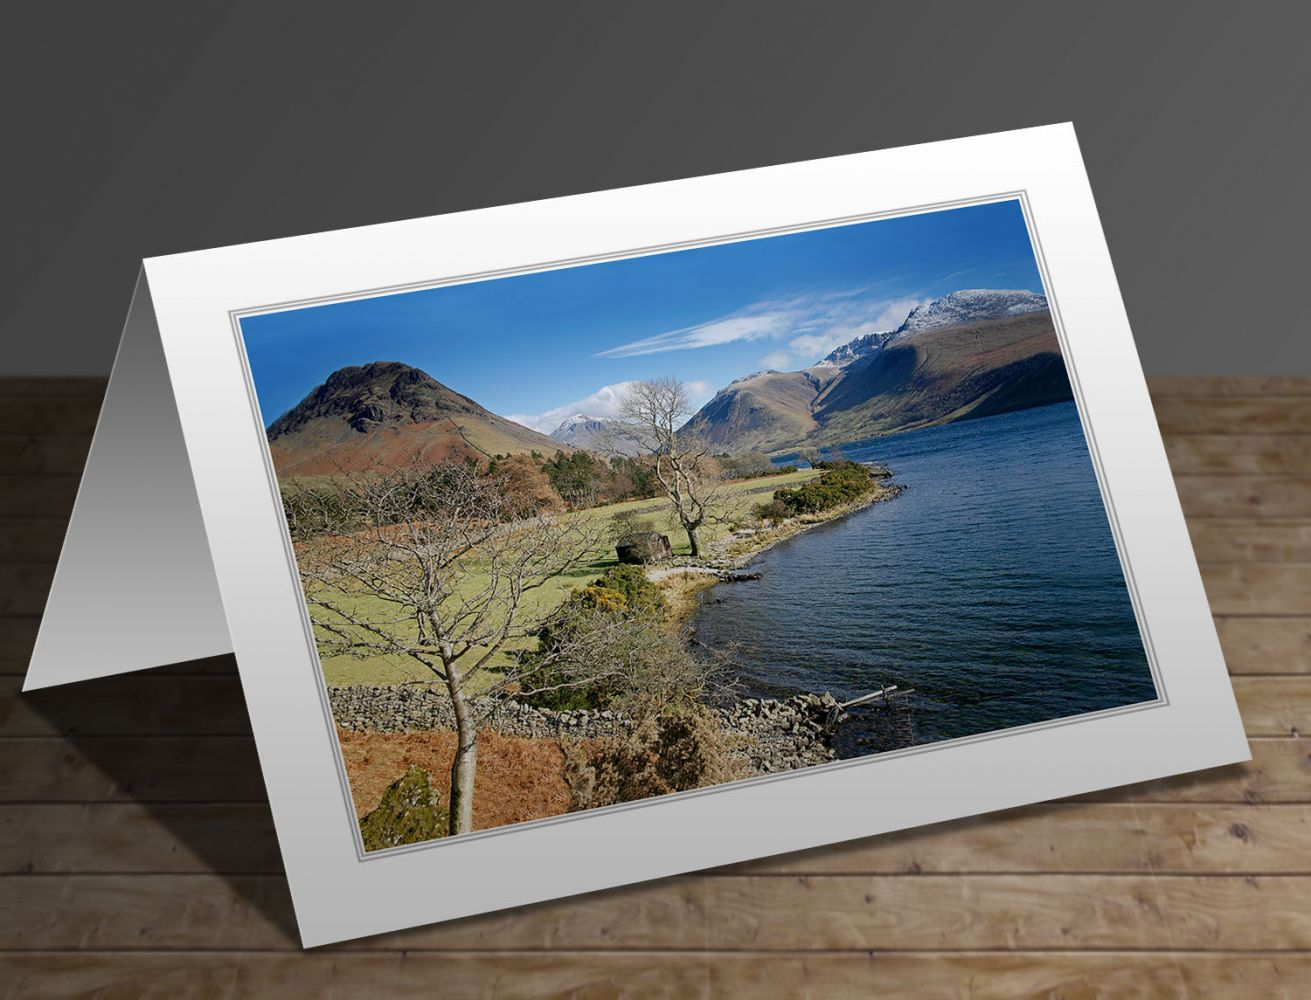 A greeting card containing the image Yewbarrow and Wasdale Head, Wastwater in the English Lake District by Martin Lawrence